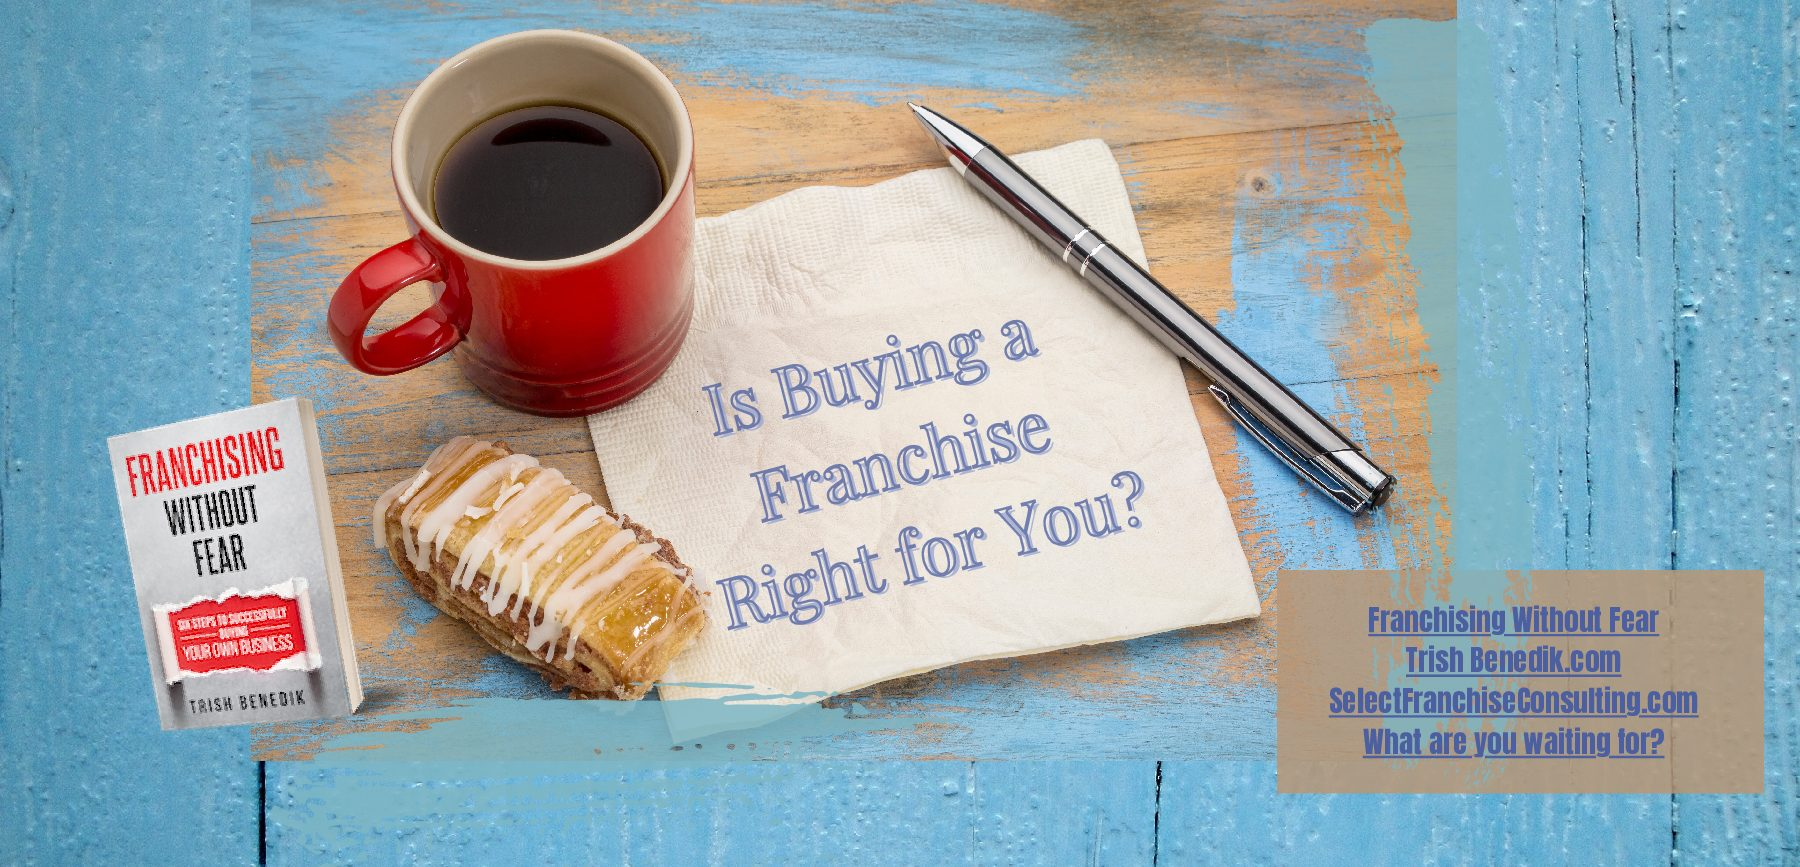 Is buying a franchise right for you?